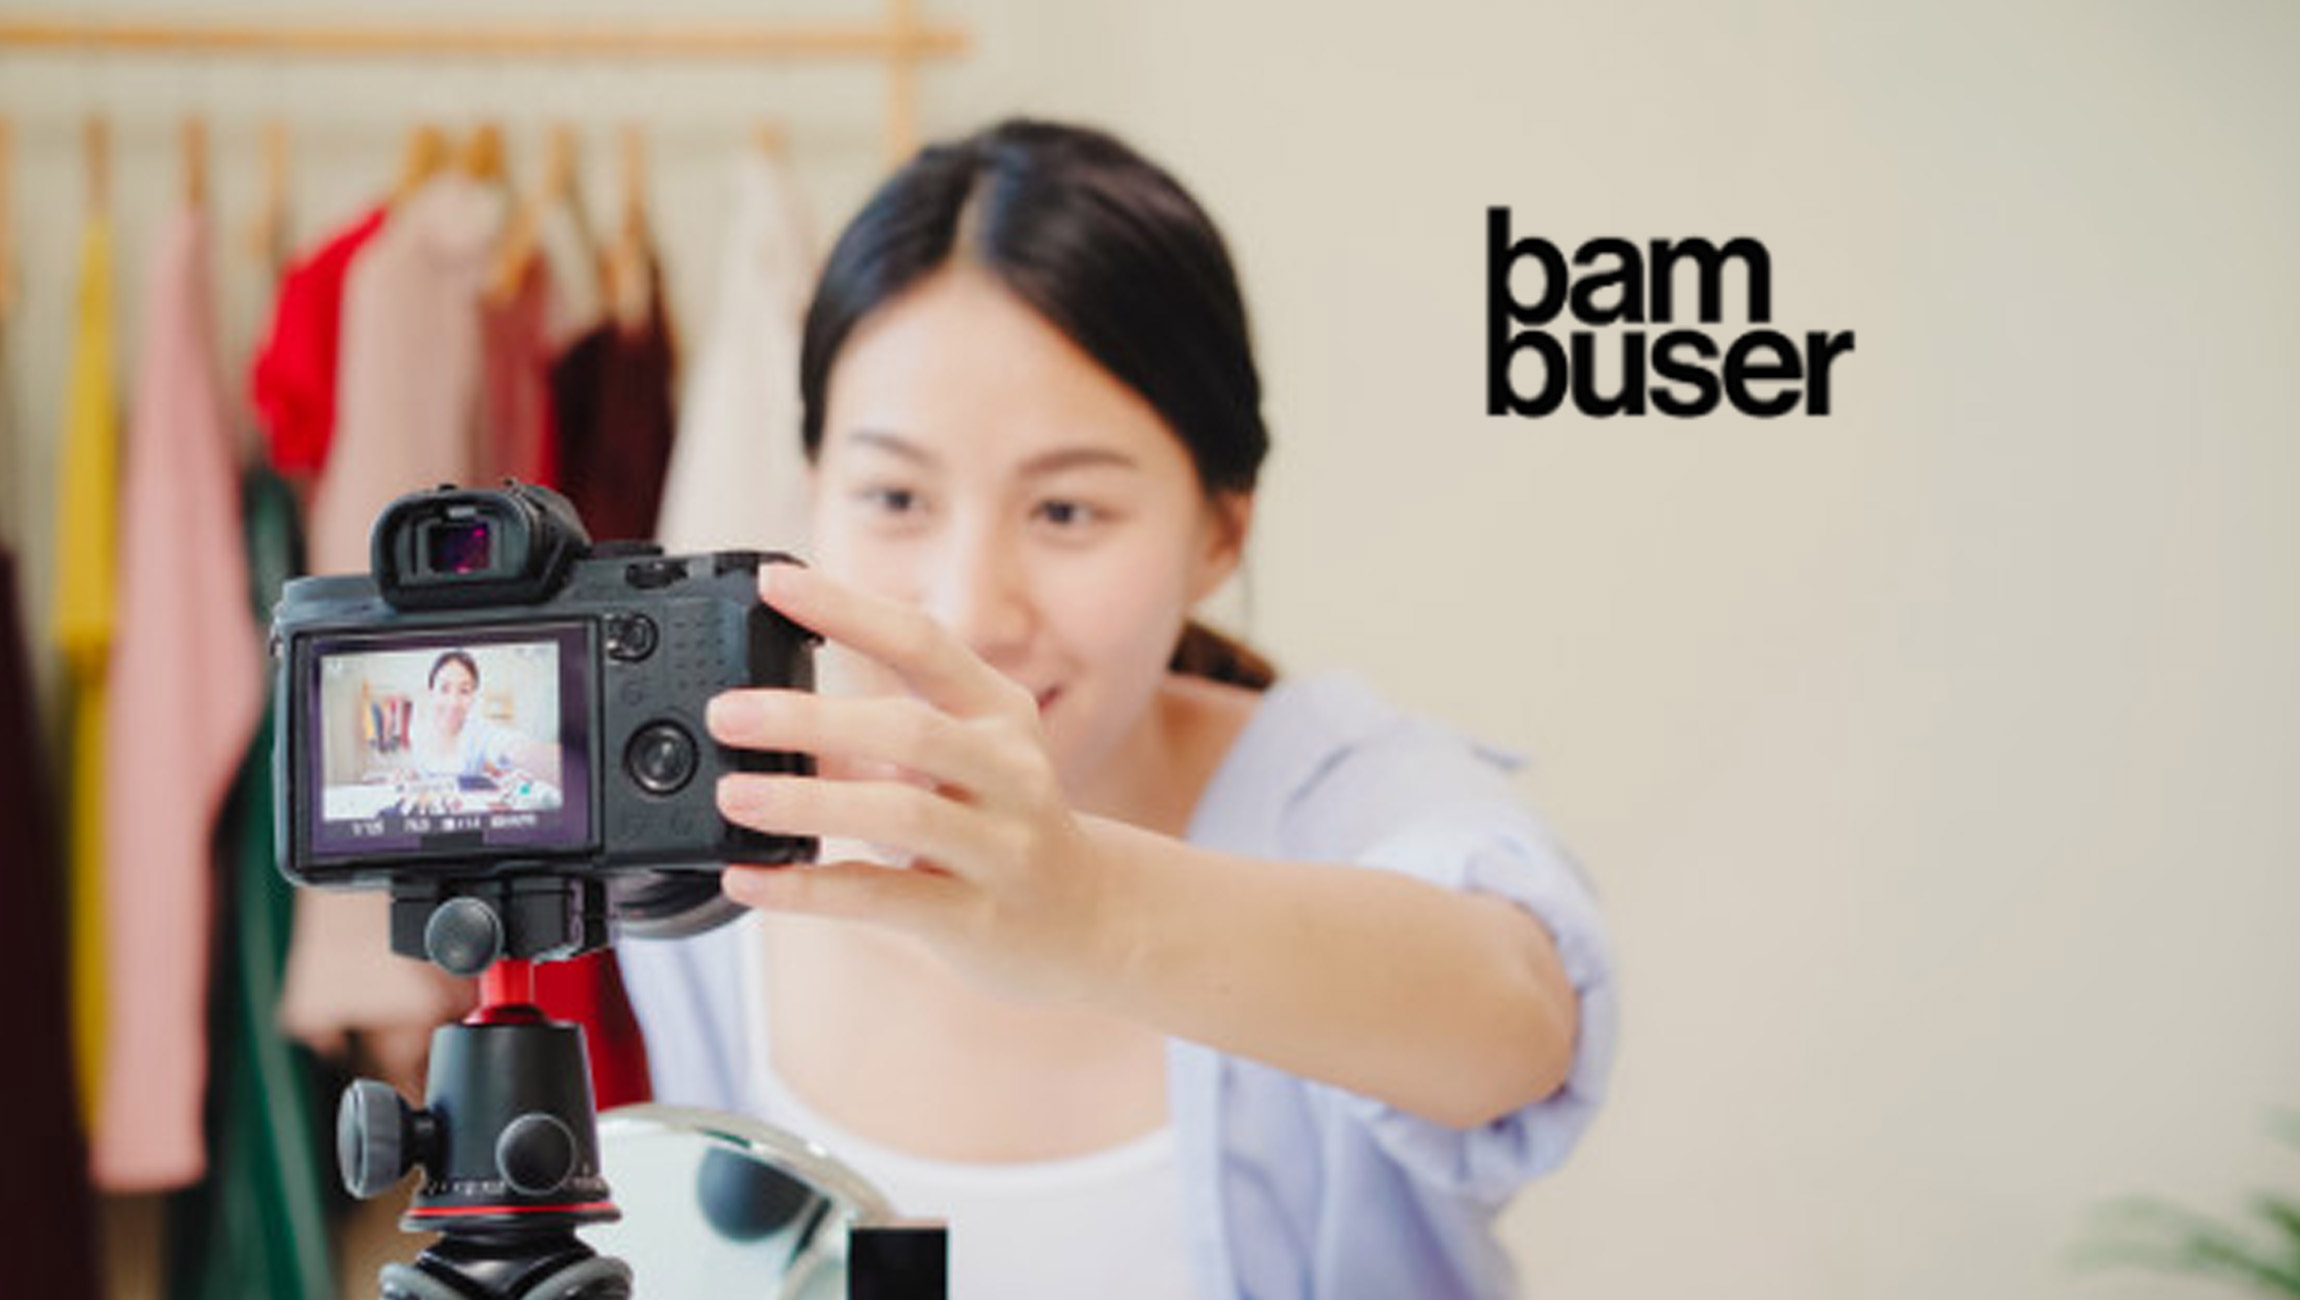 Bambuser Launches Self-Serve Platform For Live Video Shopping